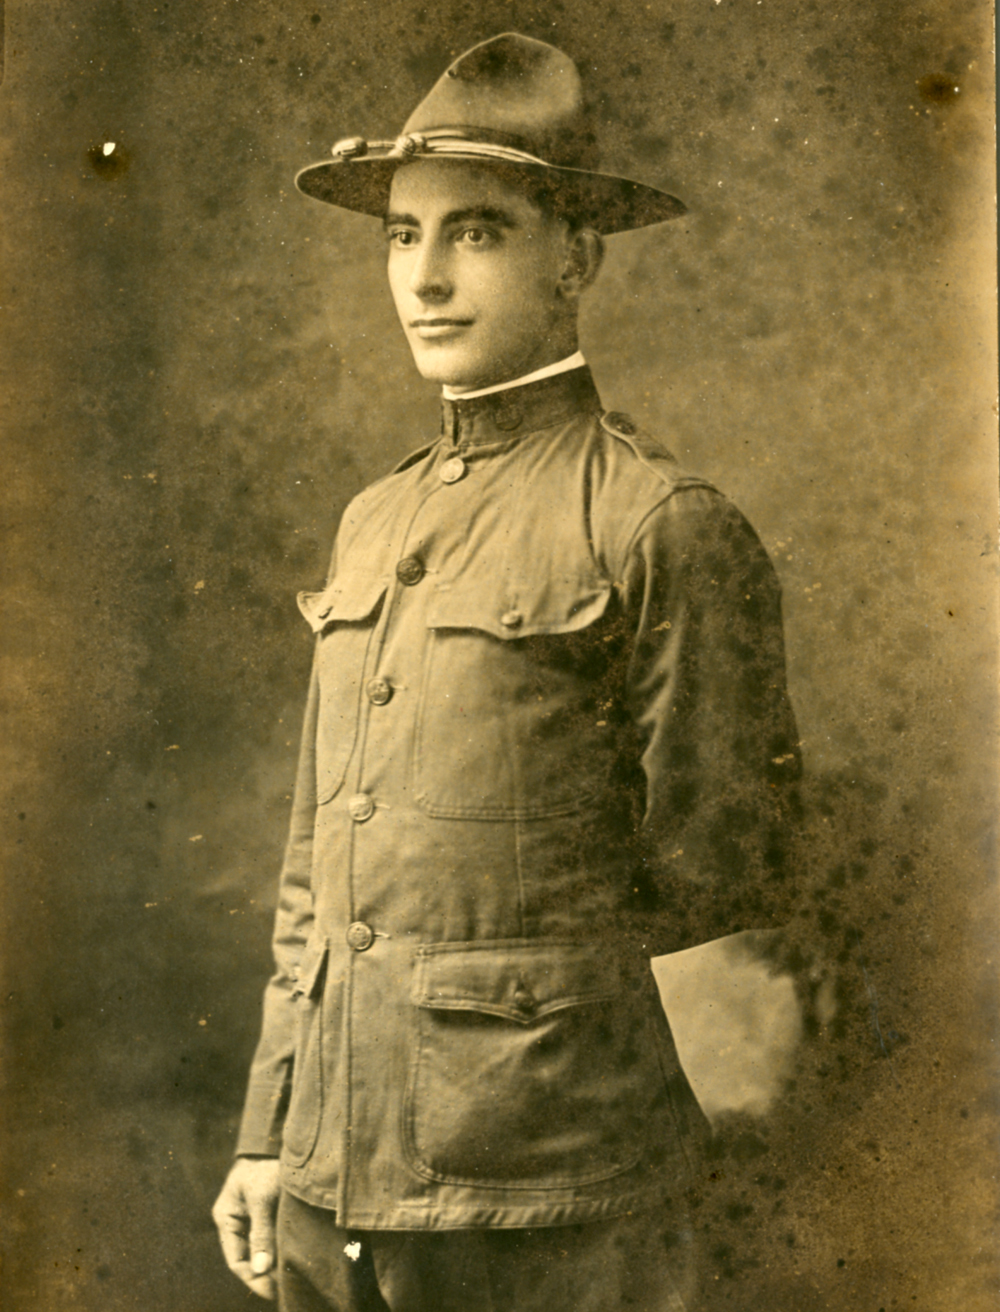 Claude White in Uniform